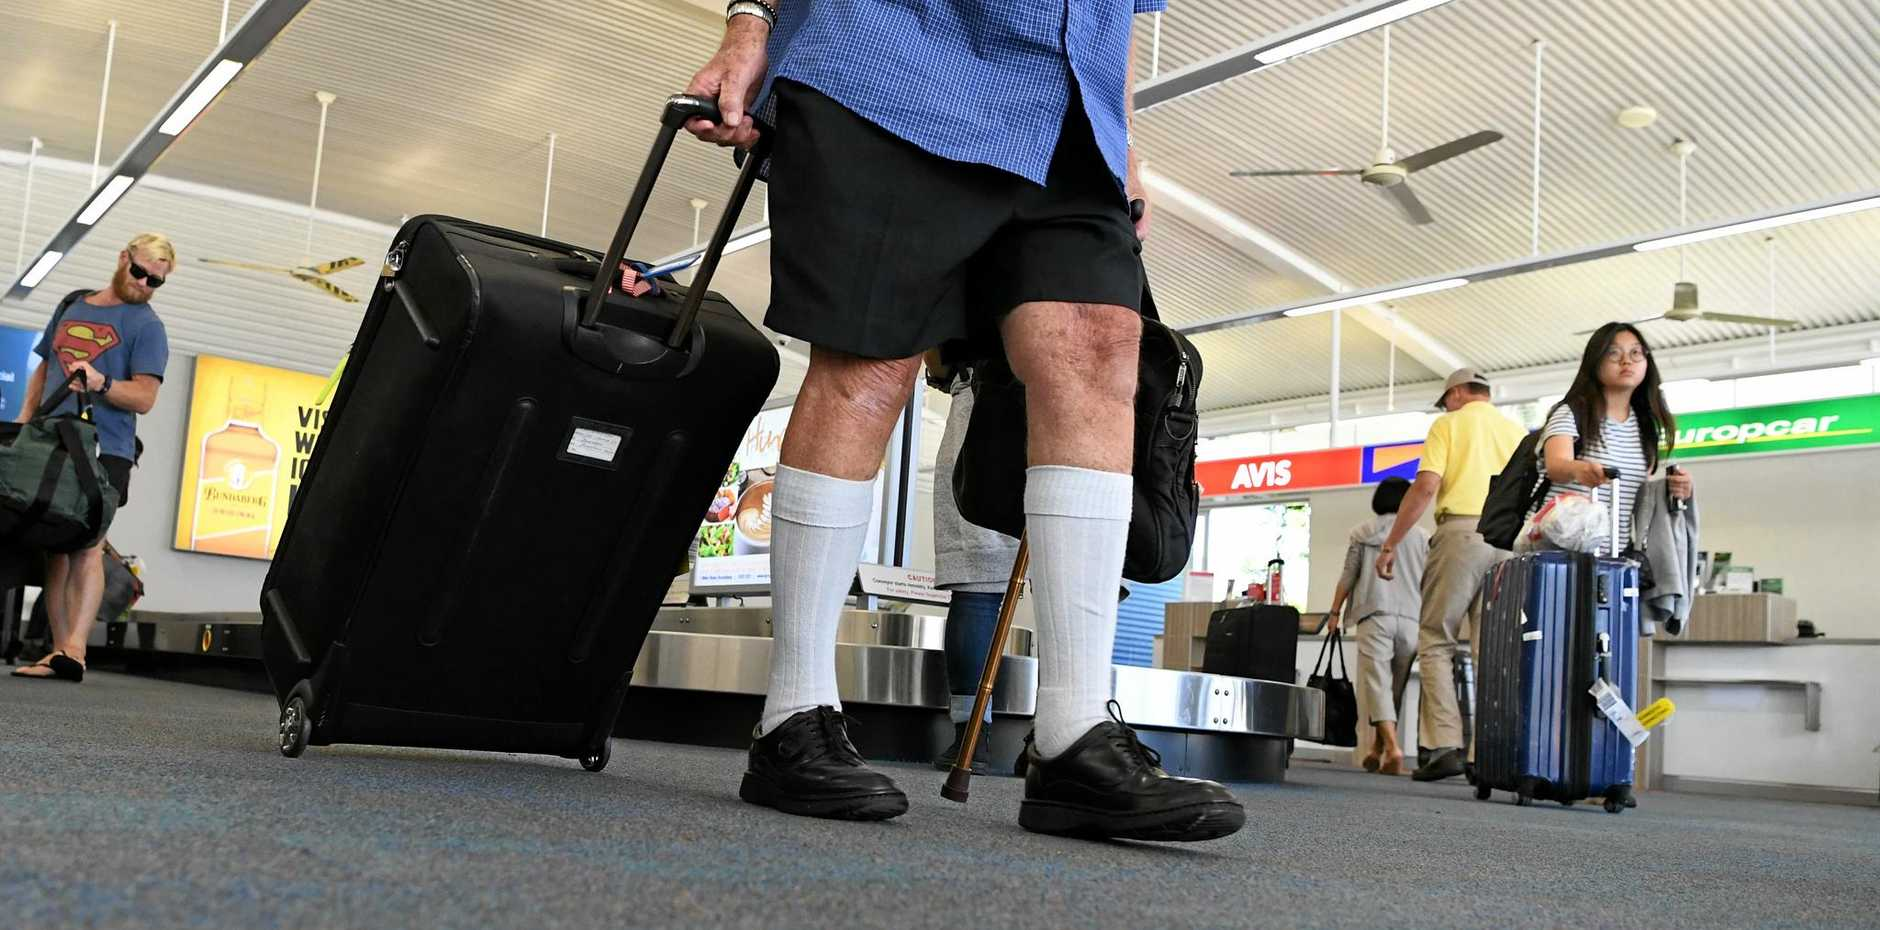 NO EXTRA WAIT HERE: Outbound passengers flying from Bundaberg Airport will not have to wait longer, according to Bundaberg Regional Council.